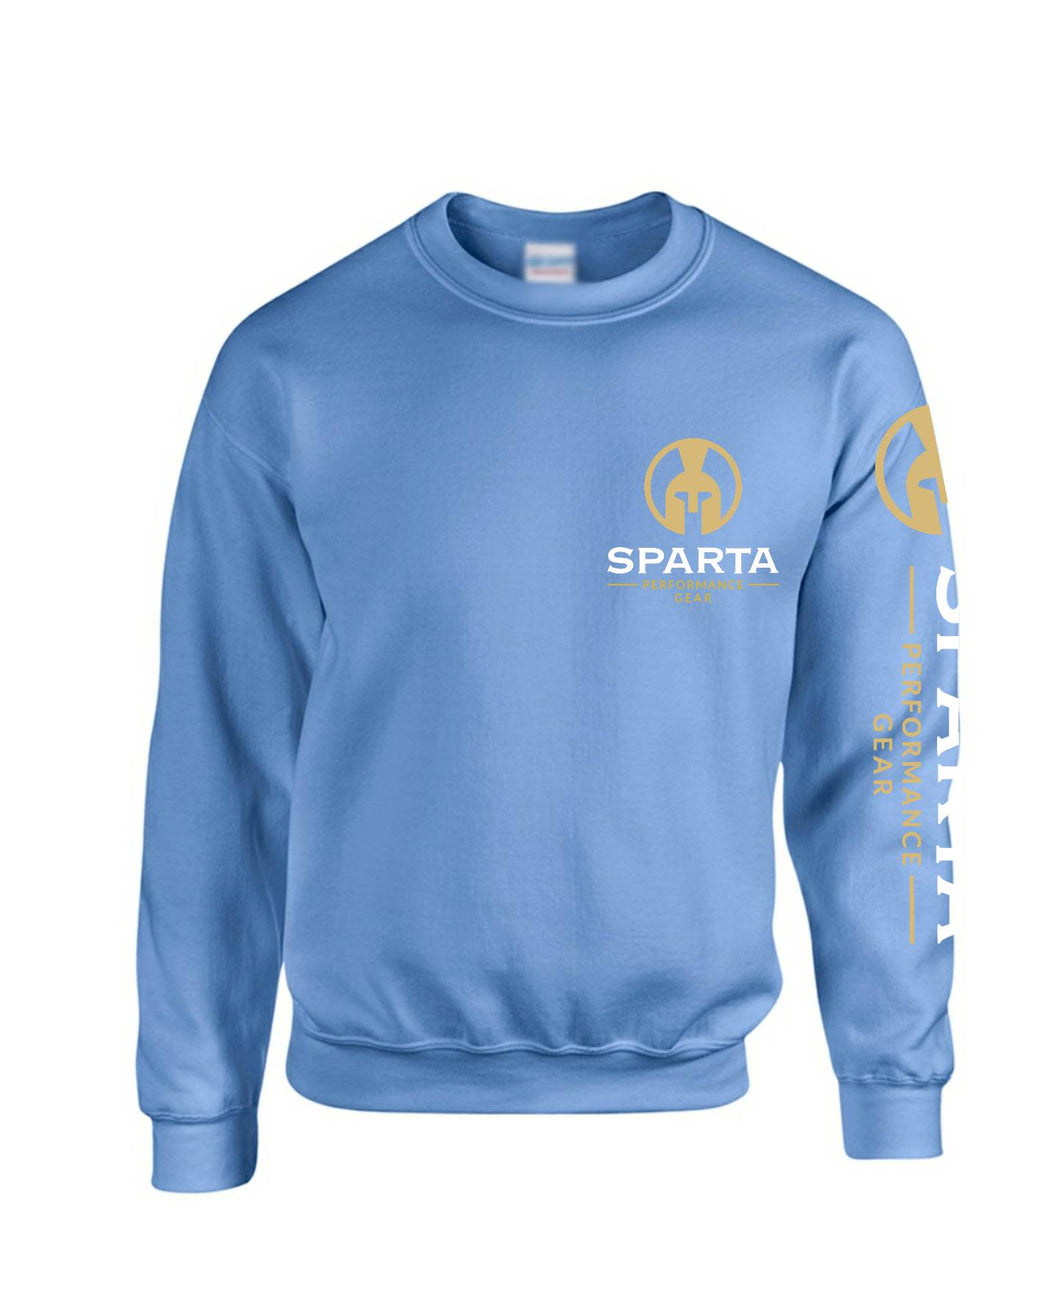 Unisex Carolina Blue Classic Chest Crest Heavy Blend Sweatshirt